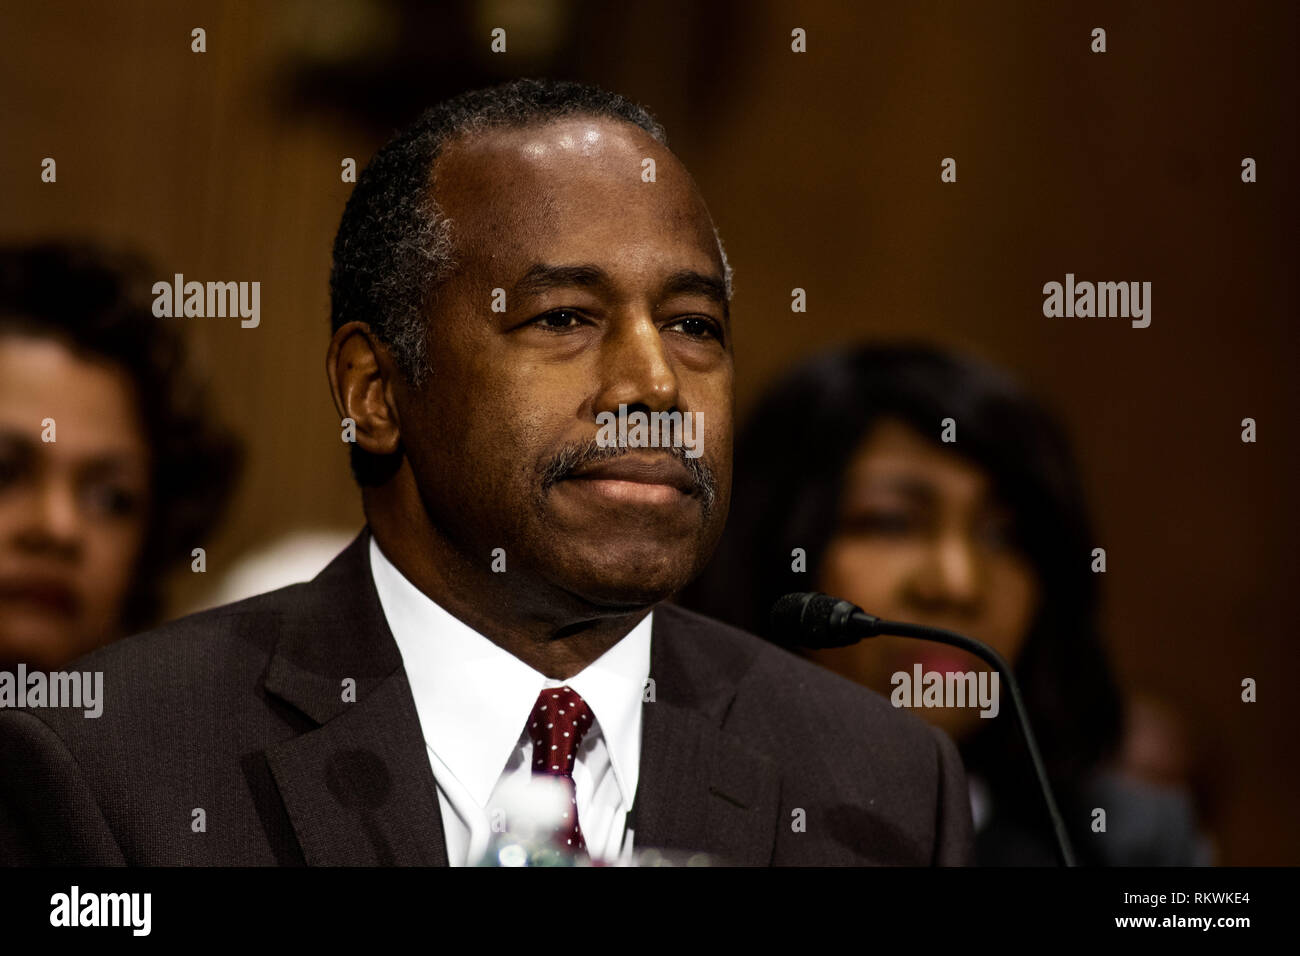 Washington, District of Columbia, USA. 12th Jan, 2017. Dr. BEN CARSON at confirmation hearing to become HUD Secretary, January 12, 2017 Credit: Douglas Christian/ZUMA Wire/Alamy Live News Stock Photo